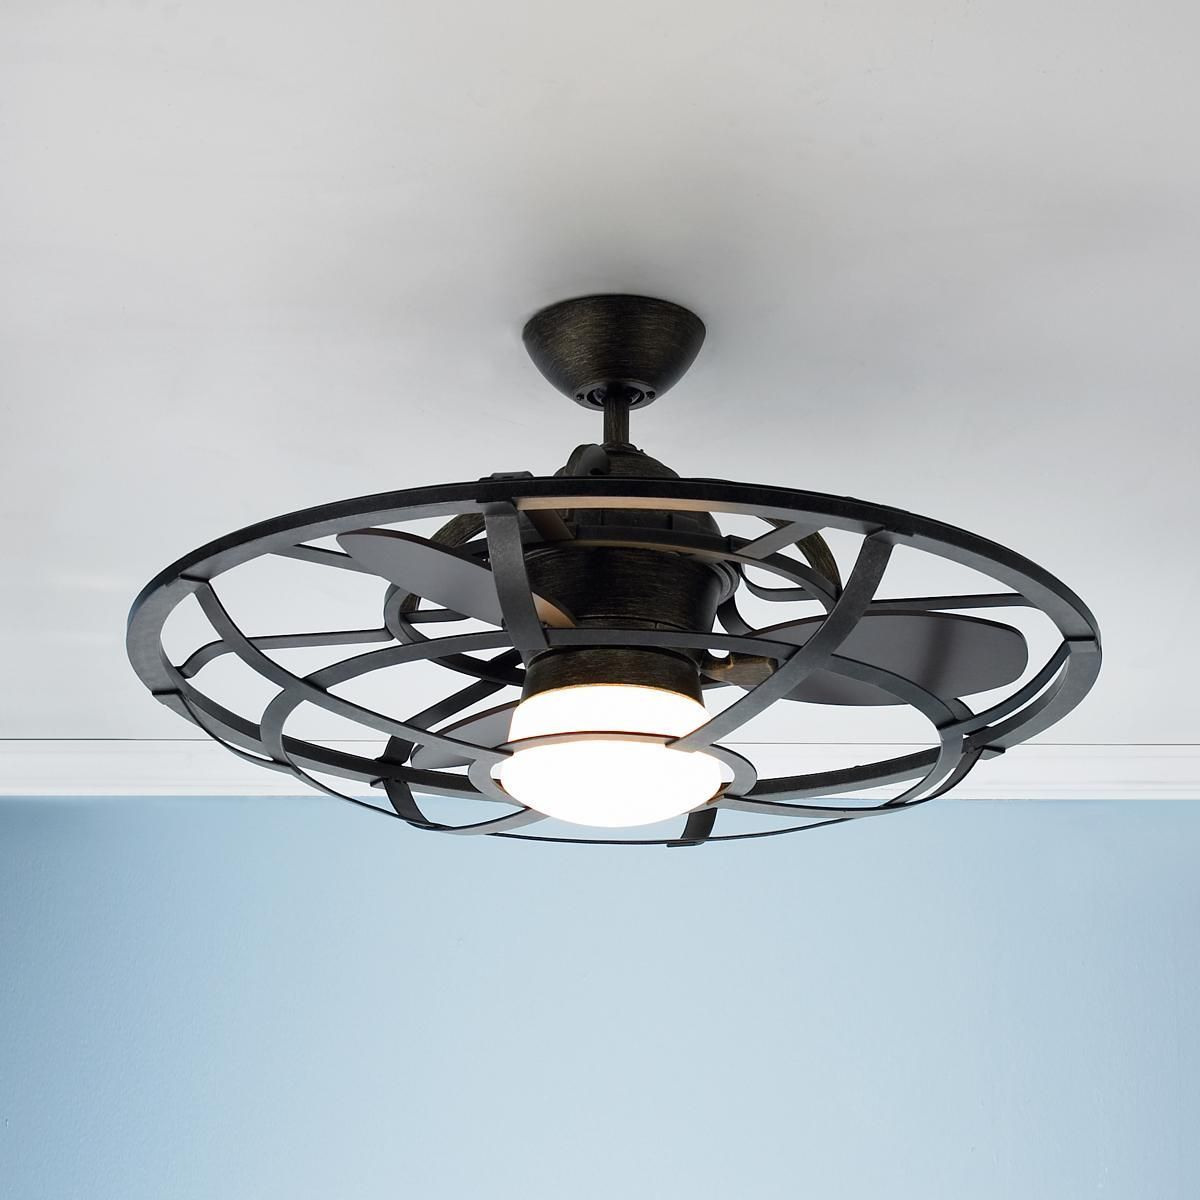 The Savoy House Alsace Fan D Lier Flaunts A Chic Rustic Industrial Look Inspired By The Wine Barrels In A F In 2020 Ceiling Fan Shades Ceiling Fan With Light Fan Light